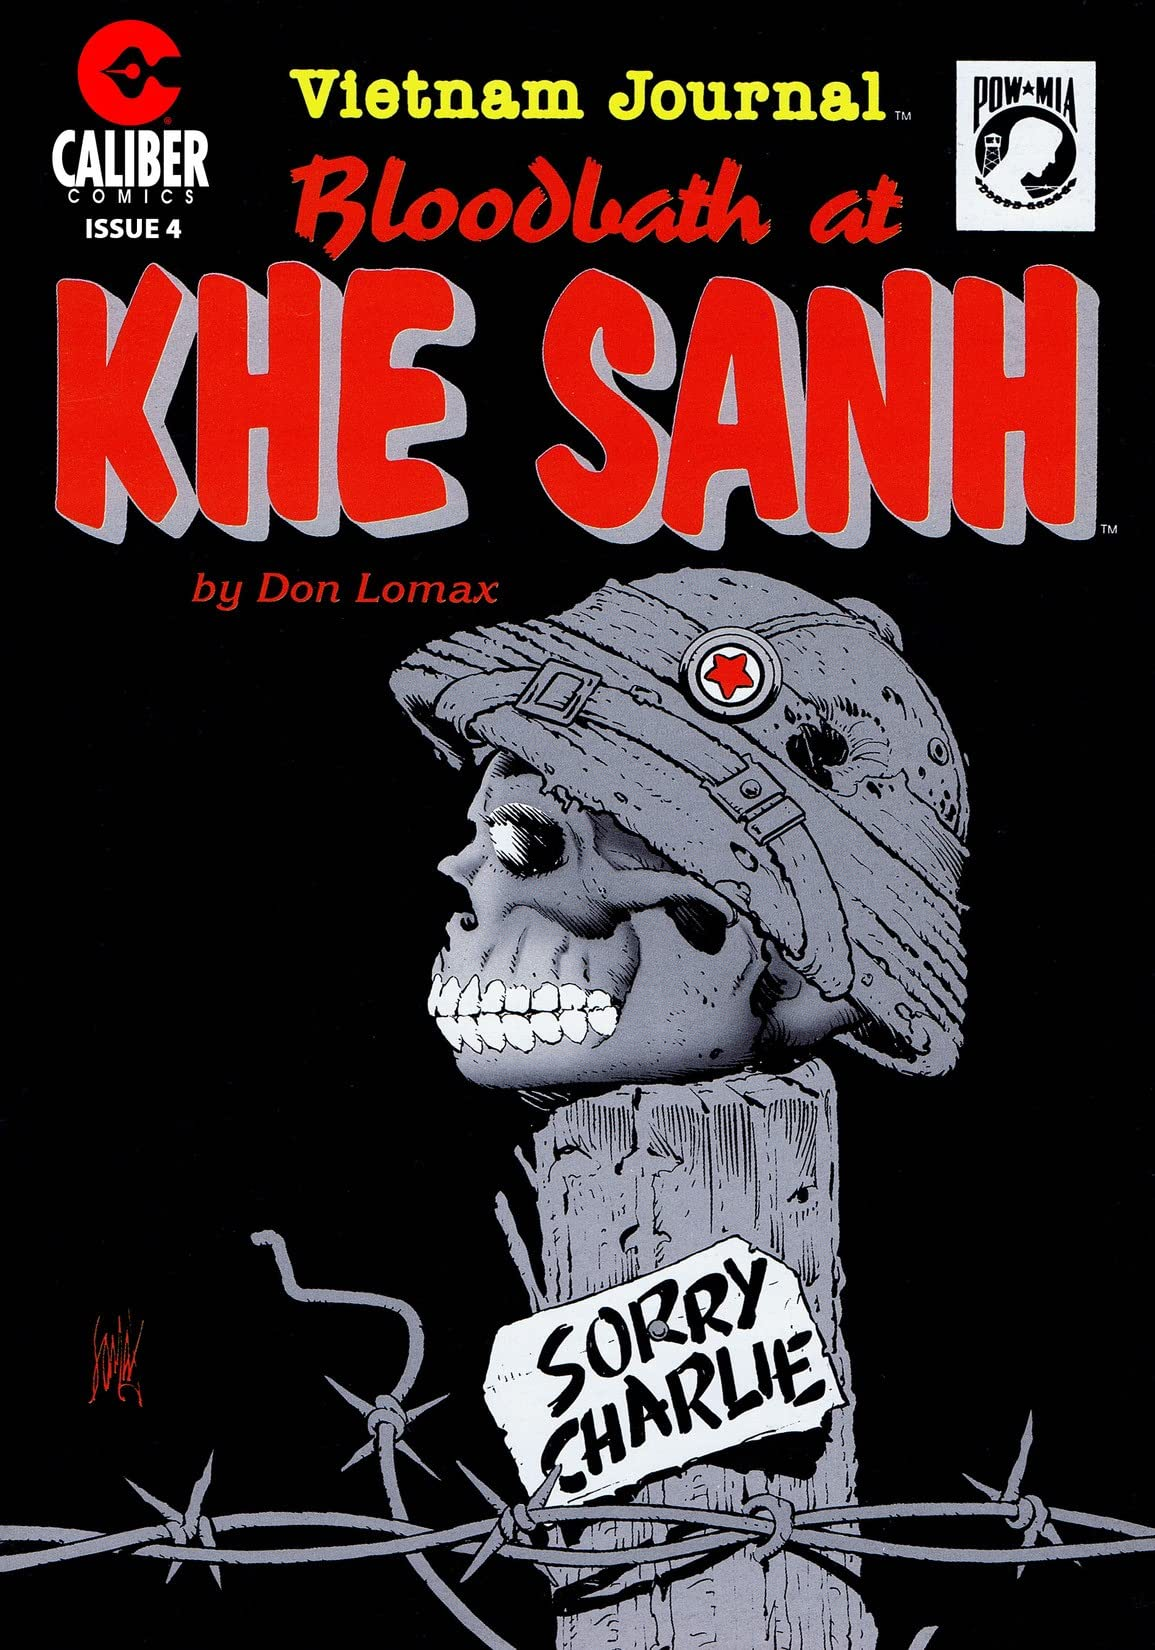 Vietnam Journal: Bloodbath at Khe Sanh #4